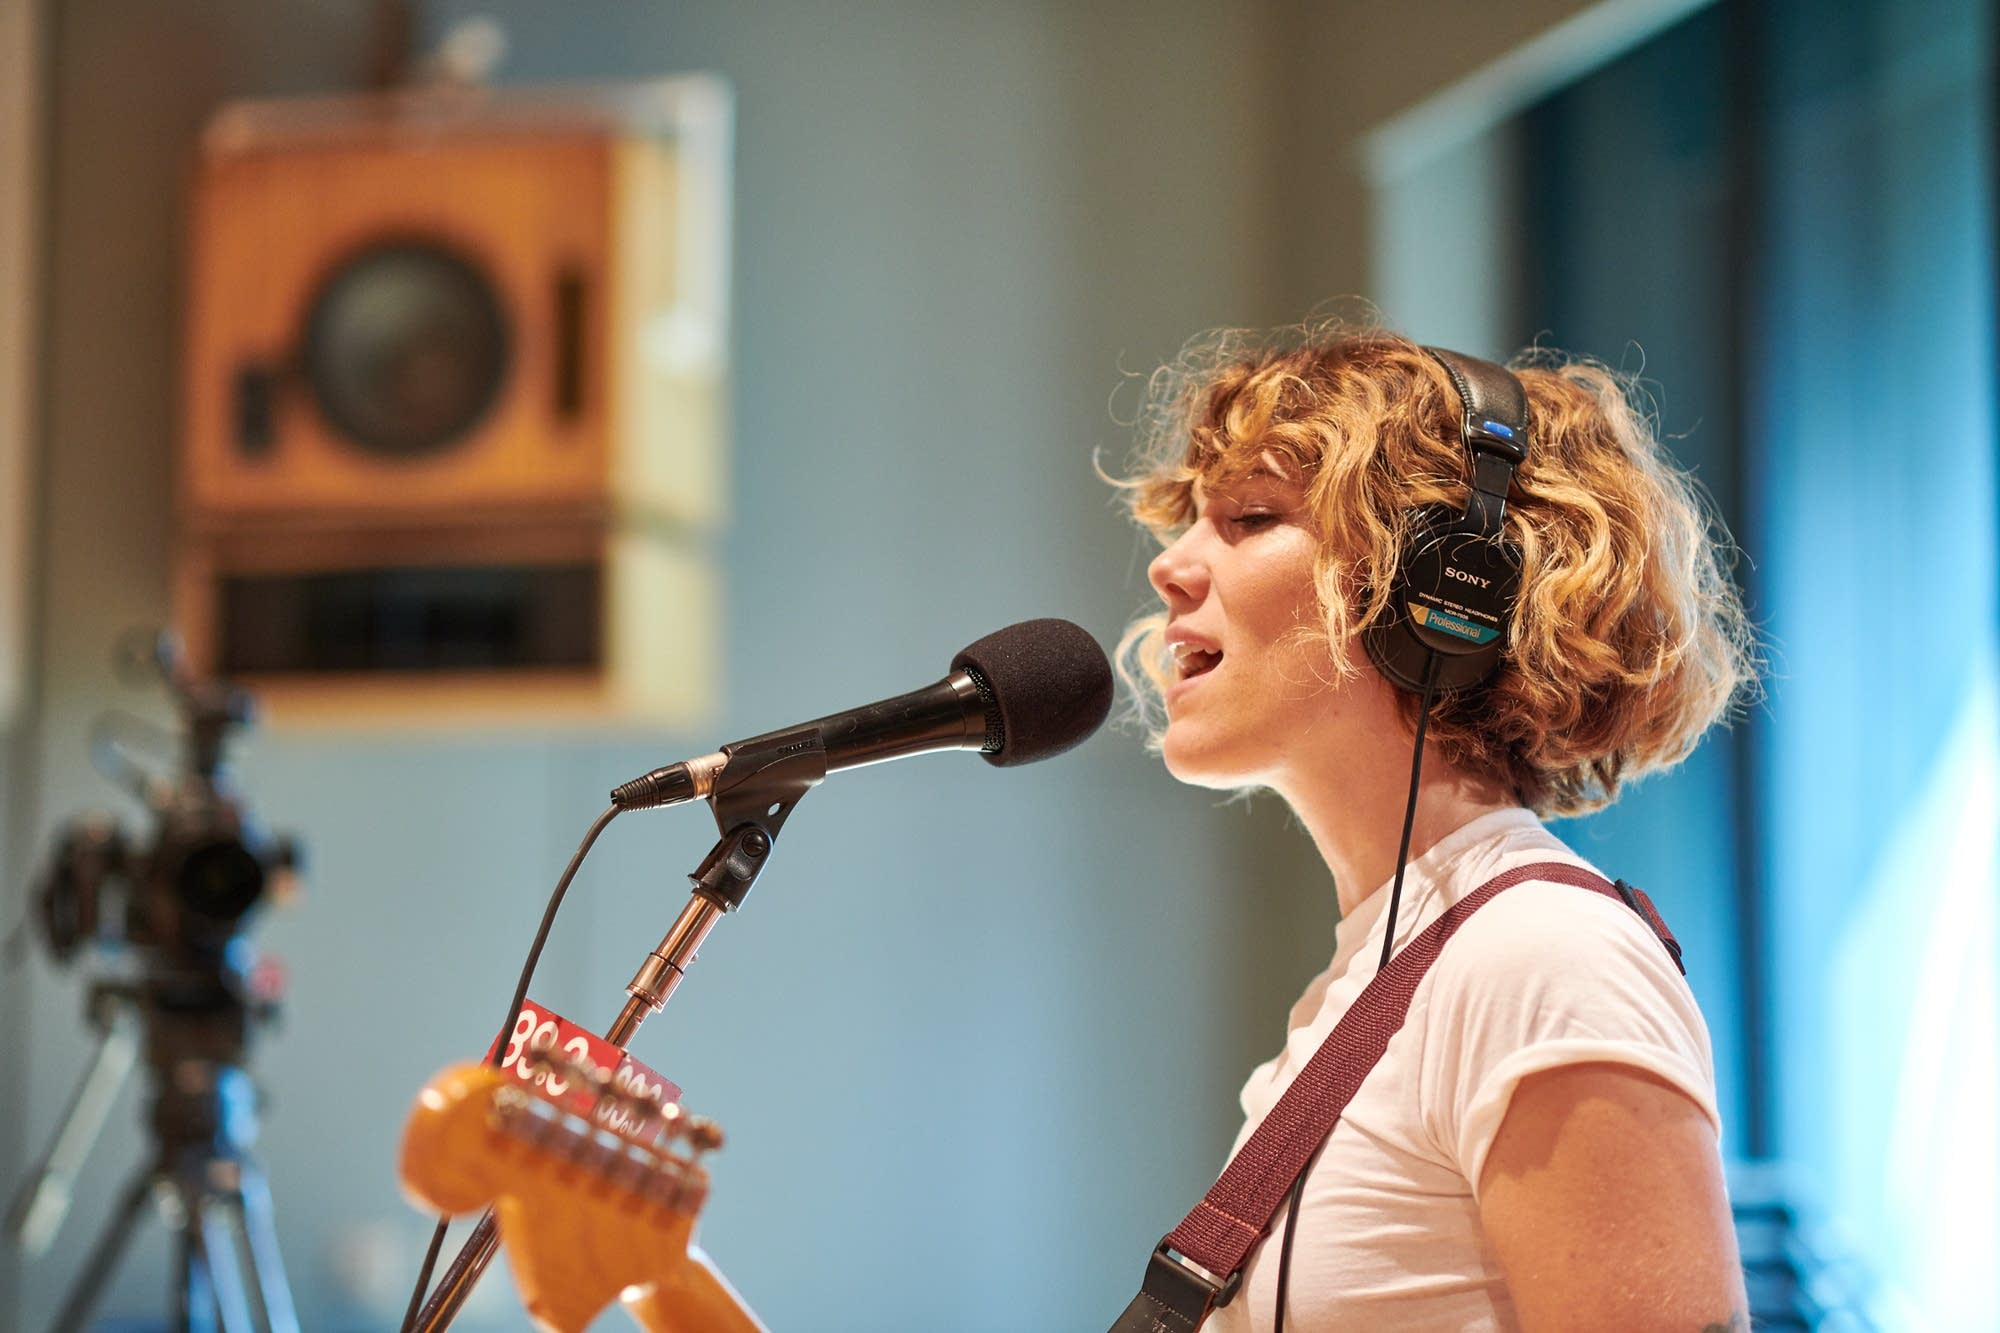 Caroline Smith performs in The Current Studio